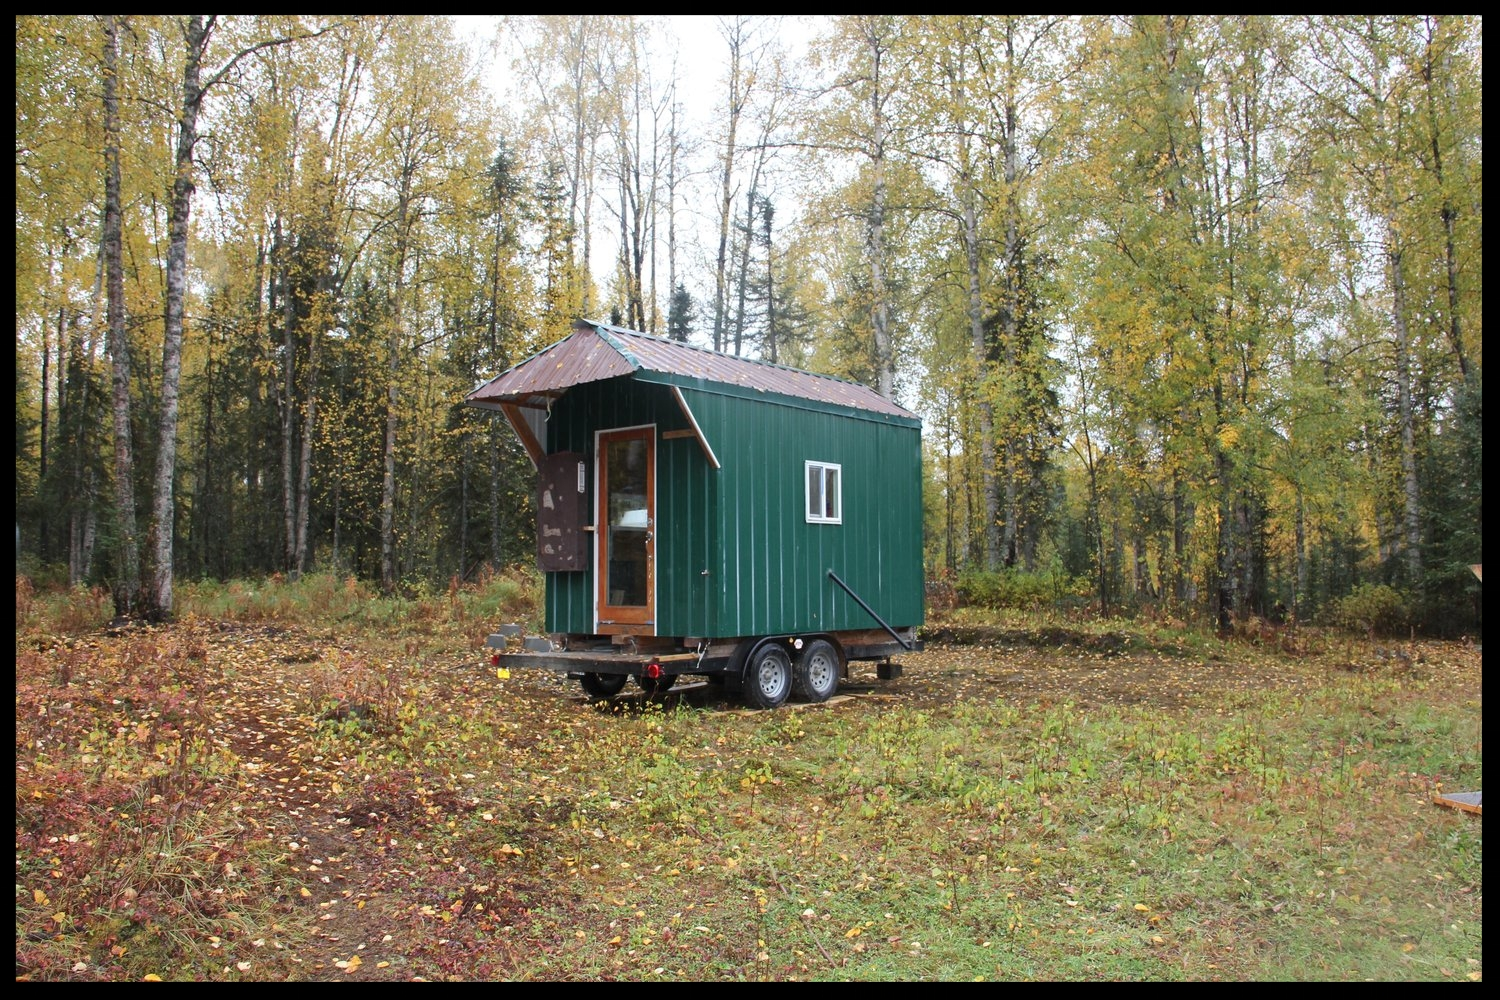 Looking for lodging in Talkeetna, Alaska or interested in a Talkeetna farmstay? Those interested in talkeetna cabins will likely enjoy our permaculture farm's tiny house